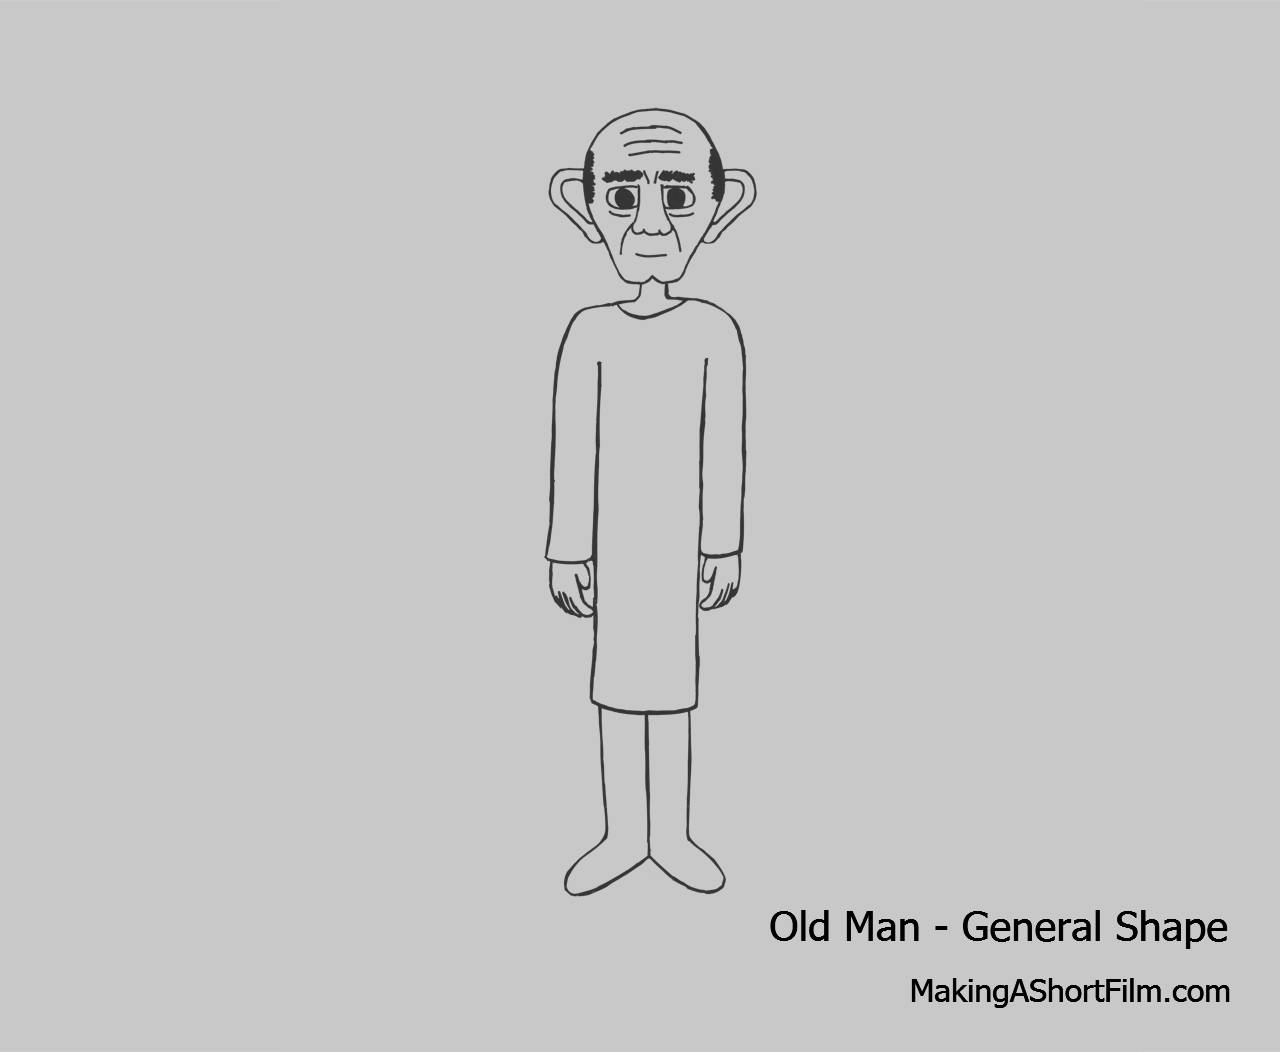 The General Shape of the Old Man